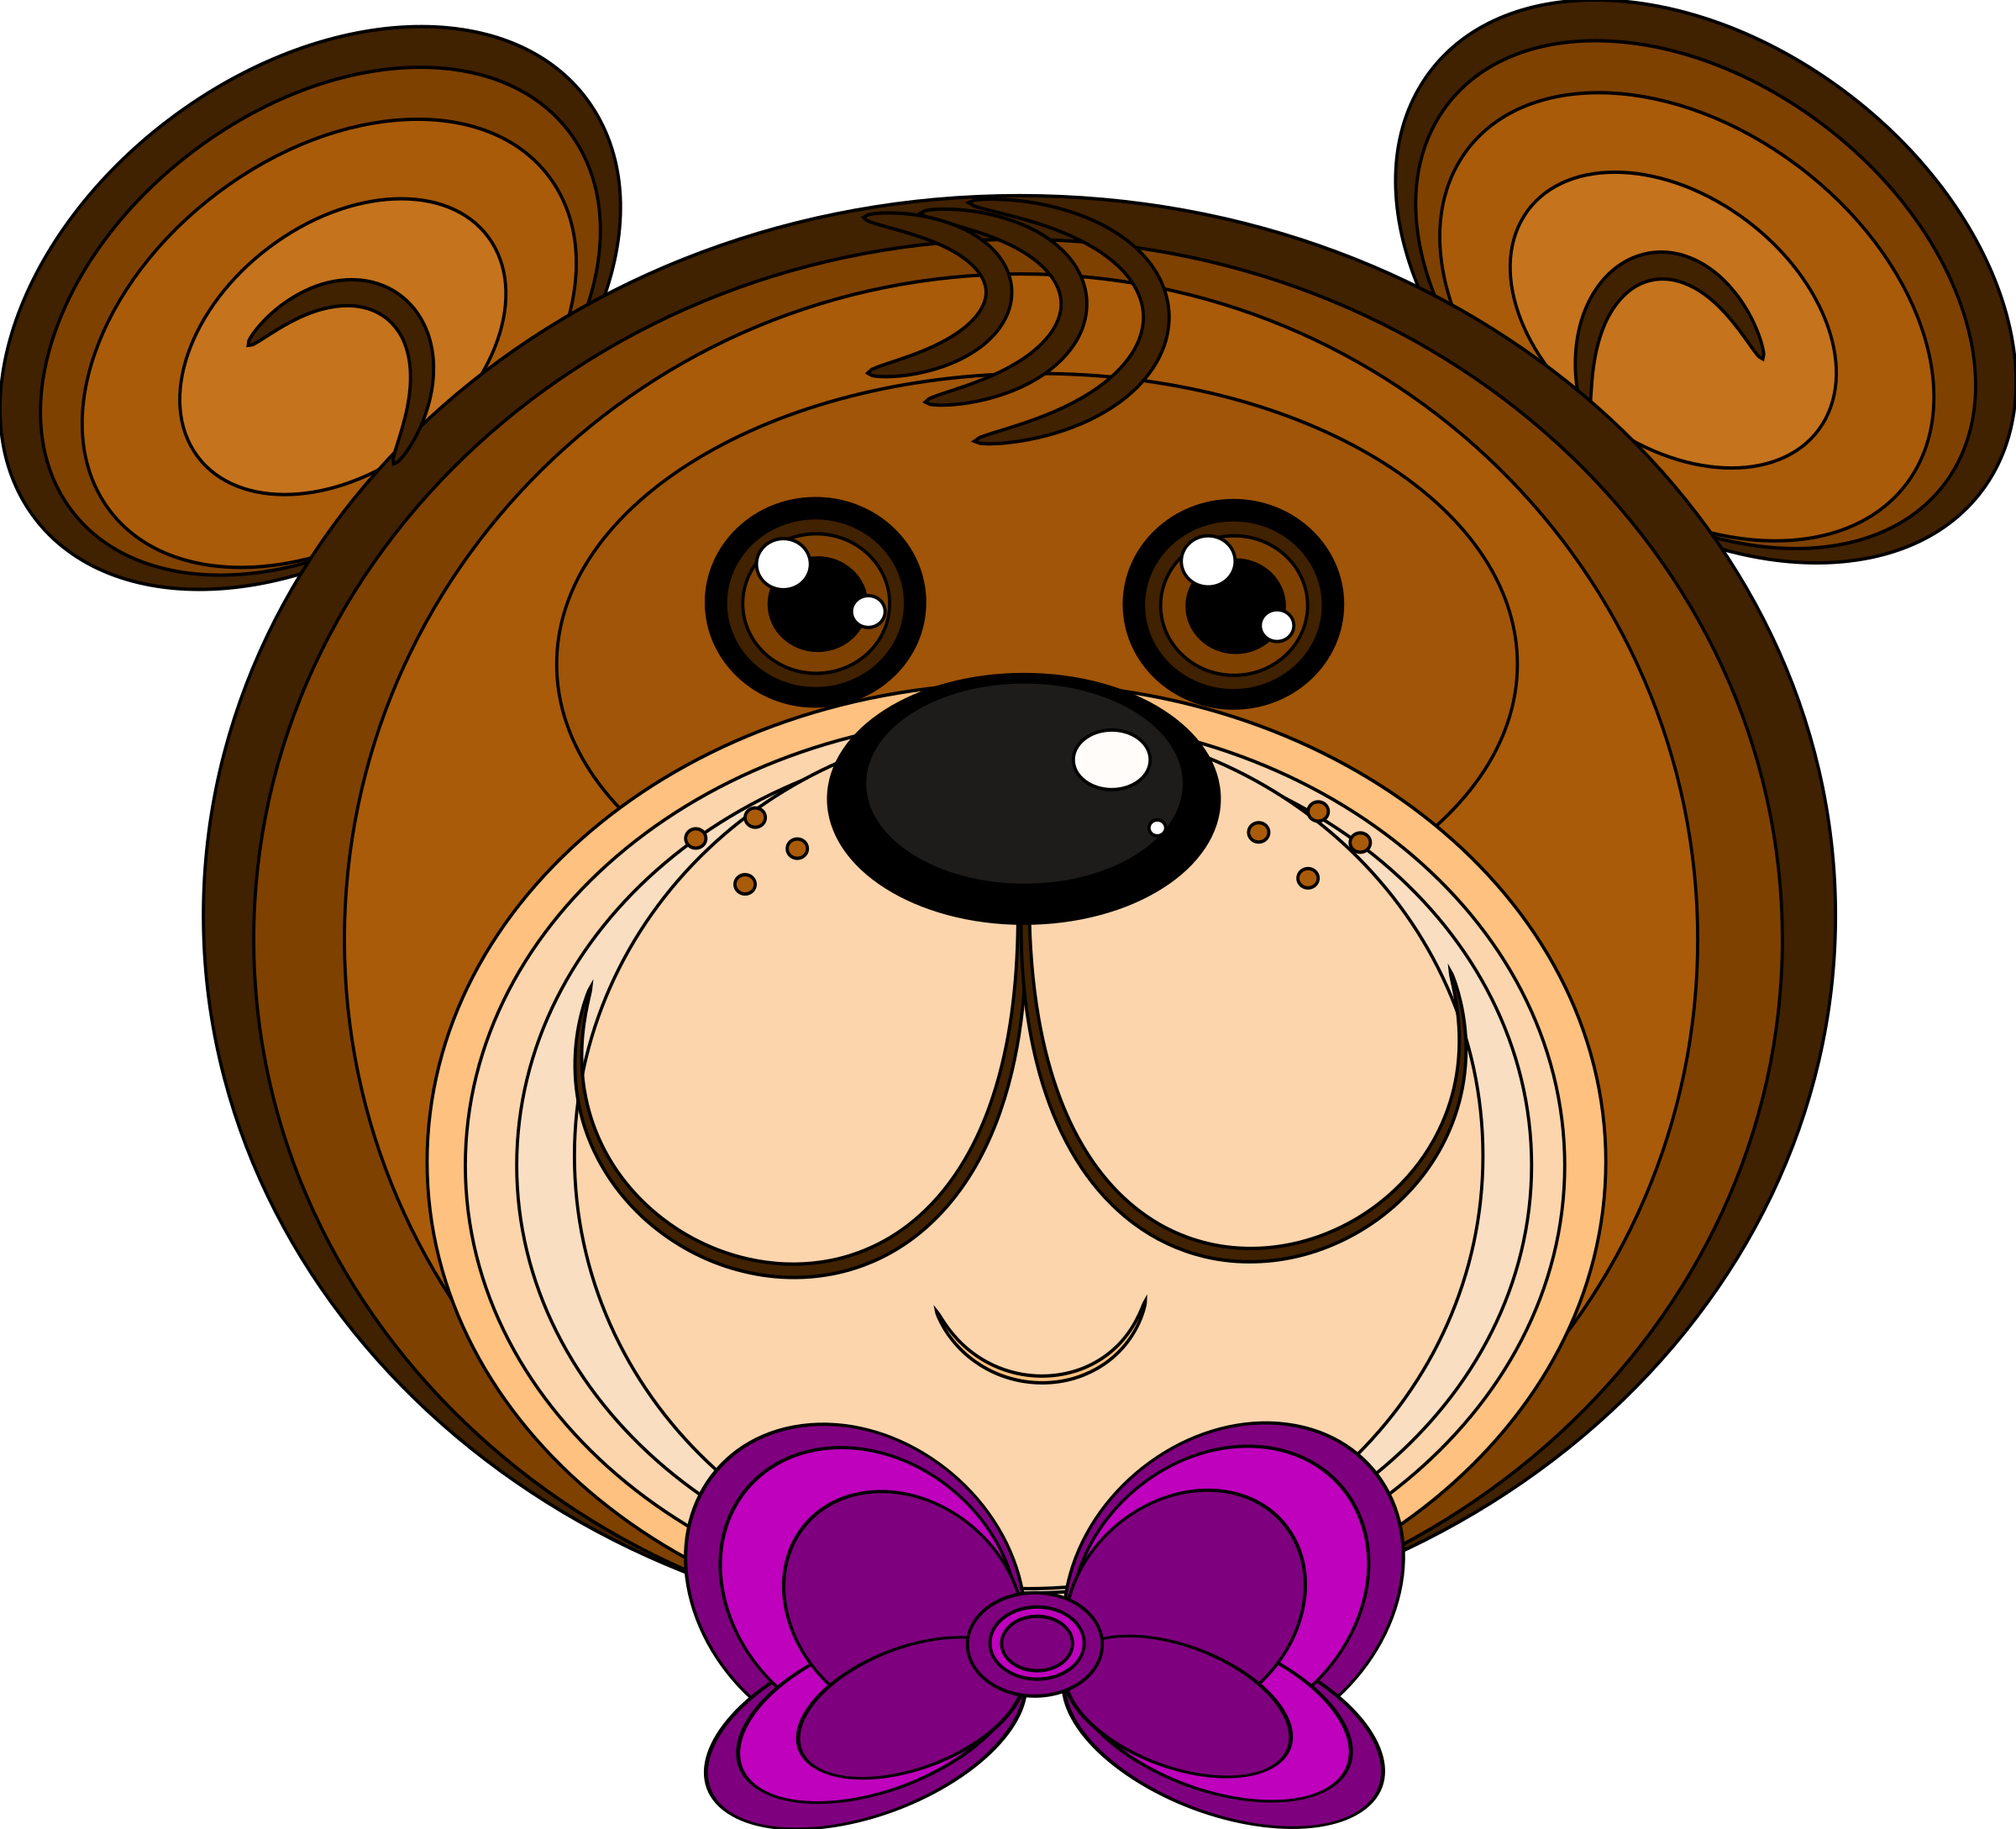 Teddy Bear by Felice